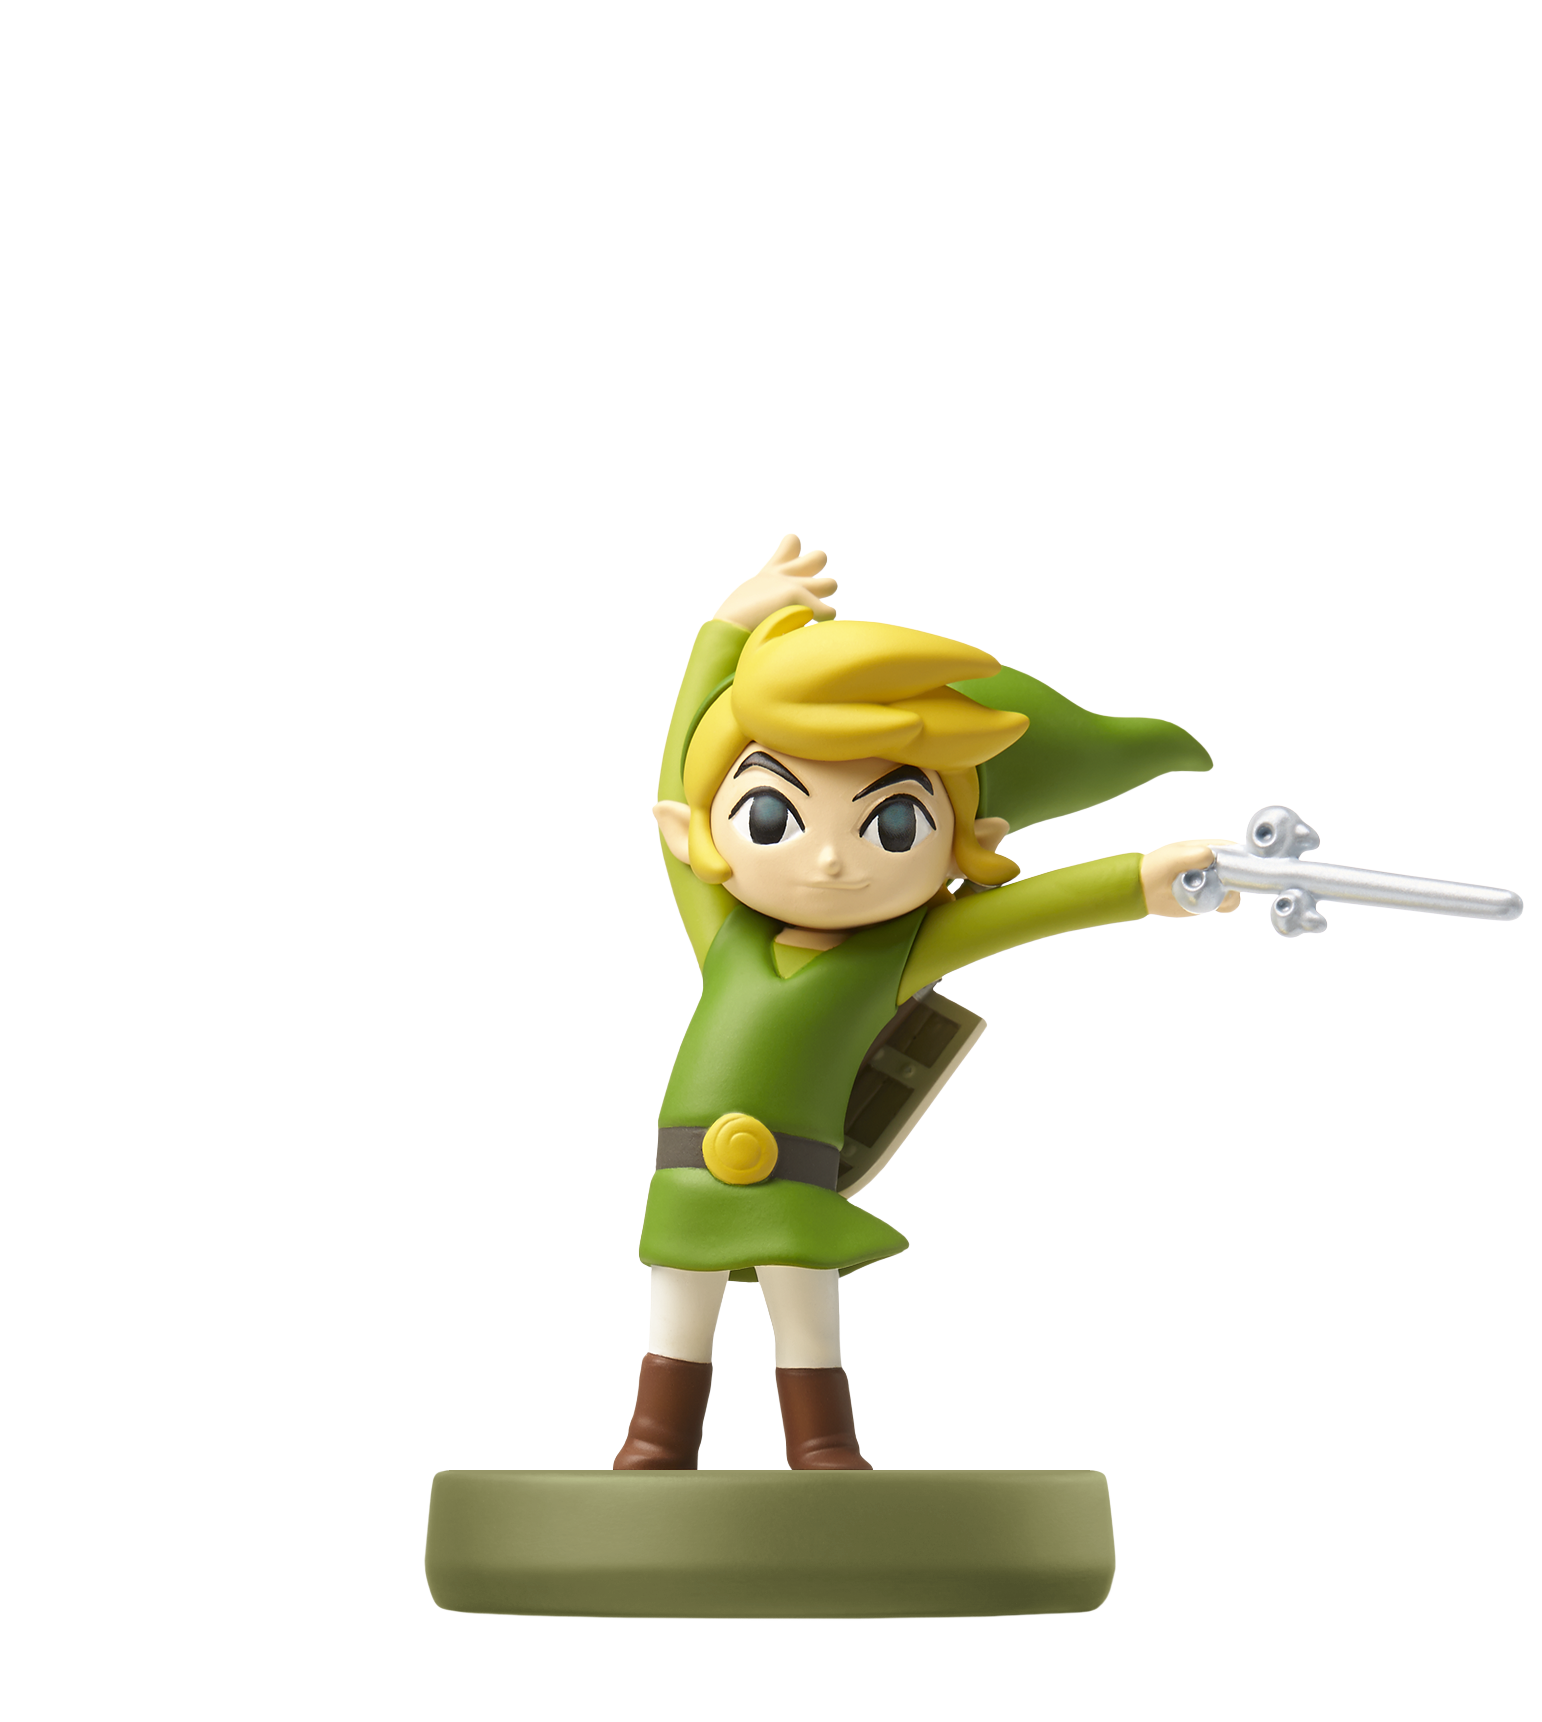 Toon link wind waker png. Image amiibo the legend